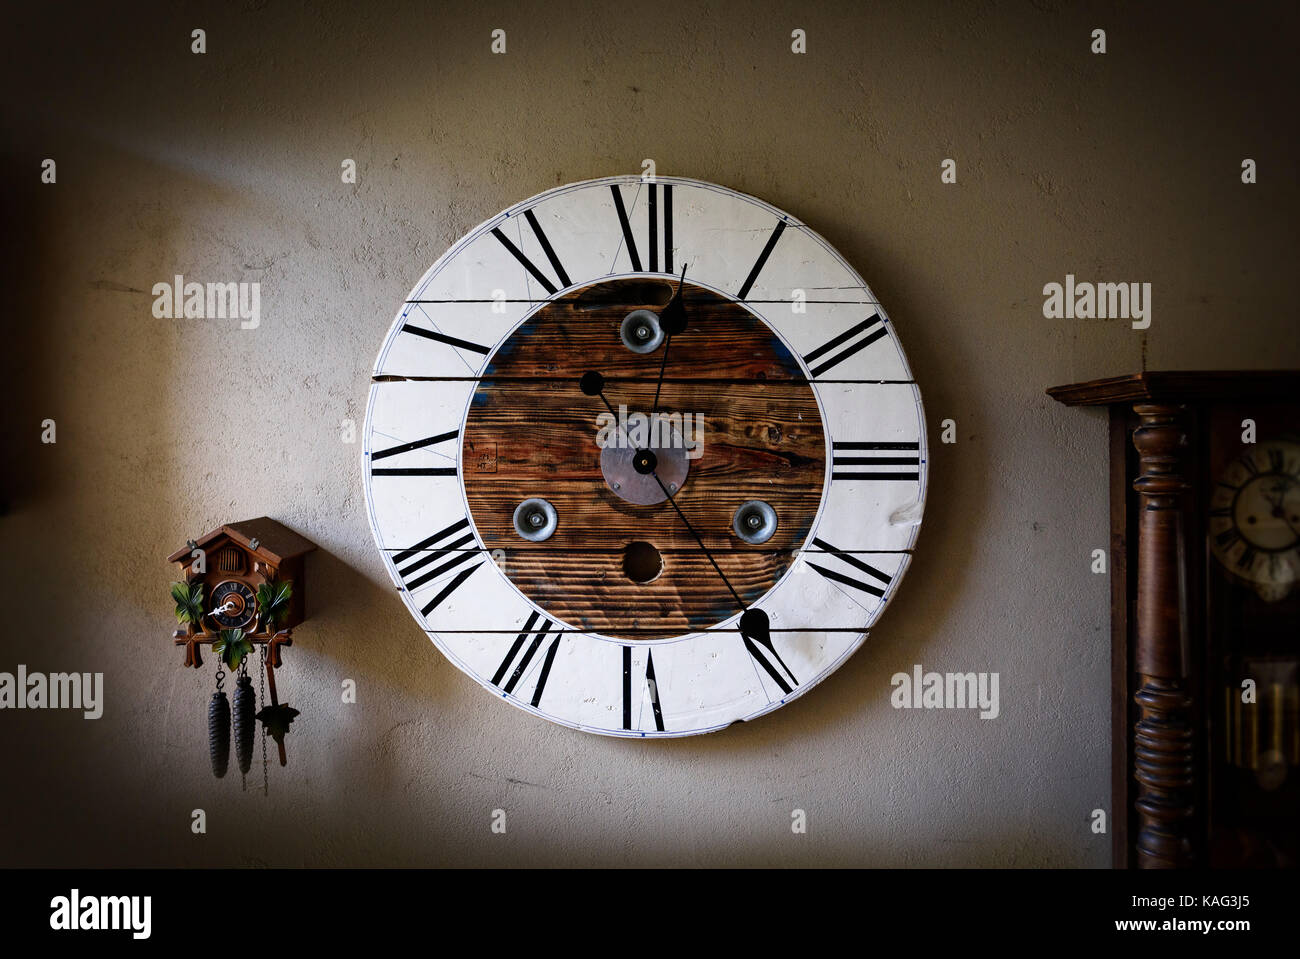 Clocks, time, time pieces, clock face, time passing temporal - Stock Image